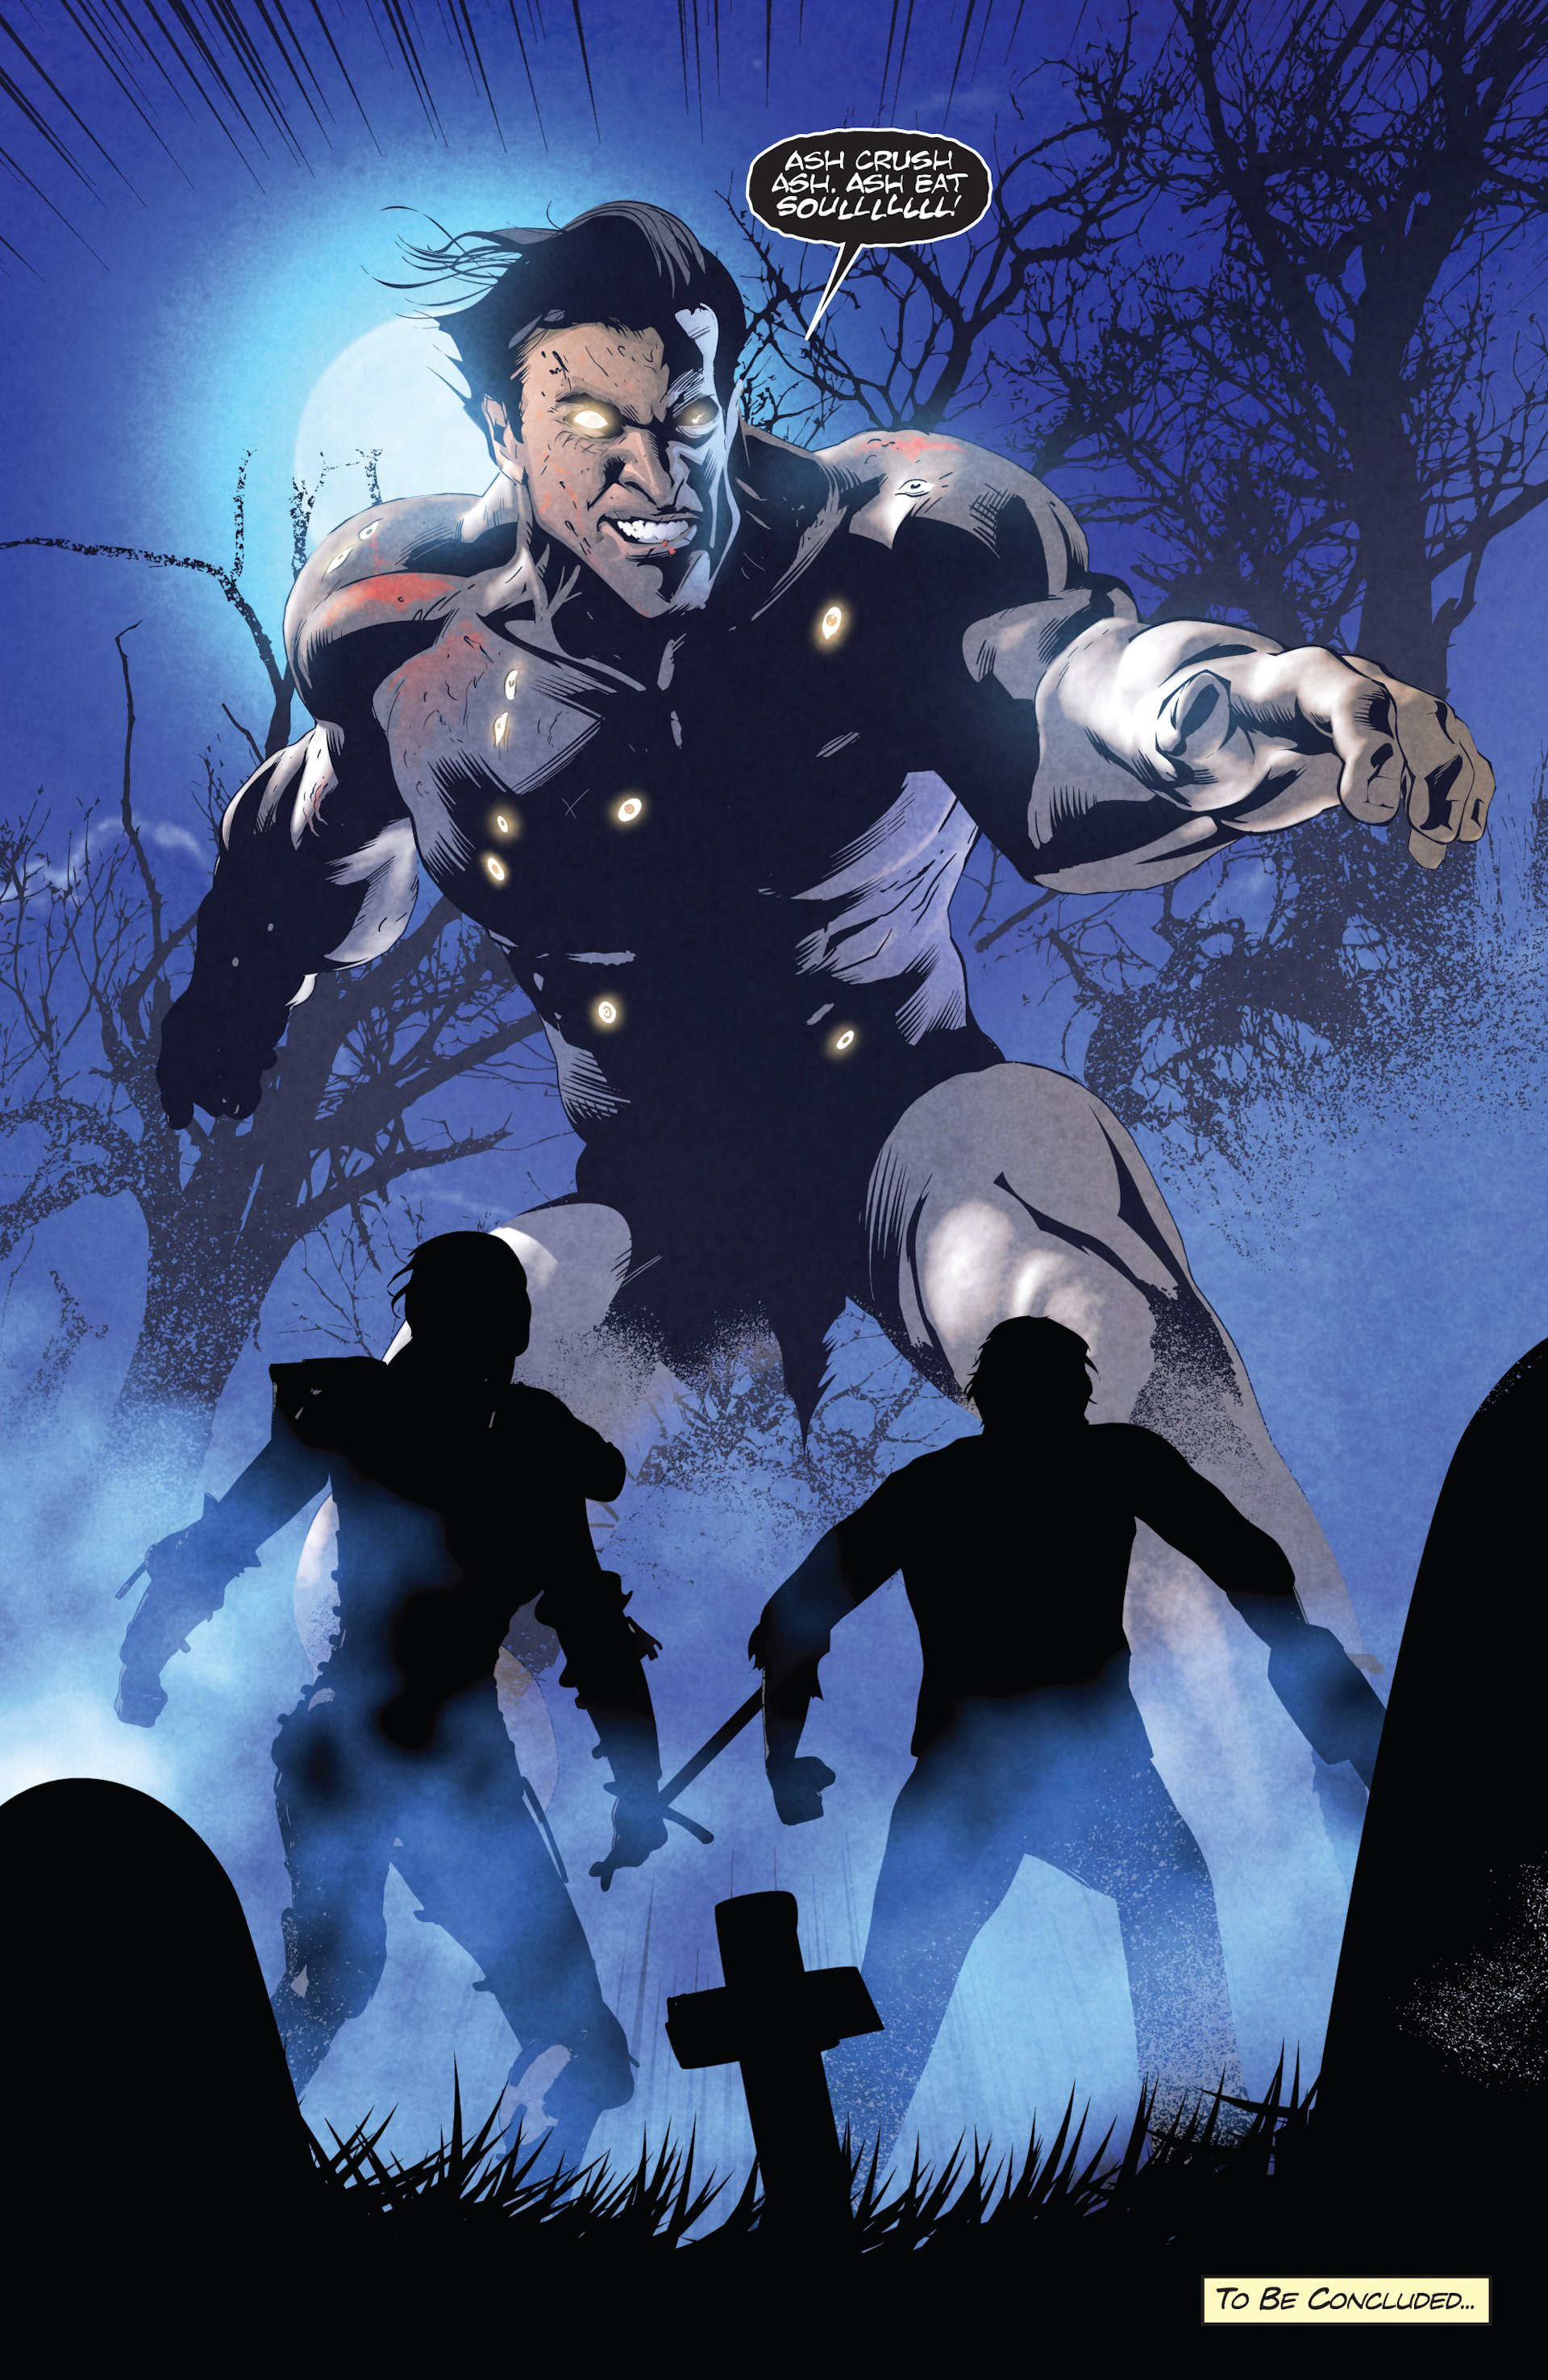 Read online Ash and the Army of Darkness comic -  Issue #4 - 22